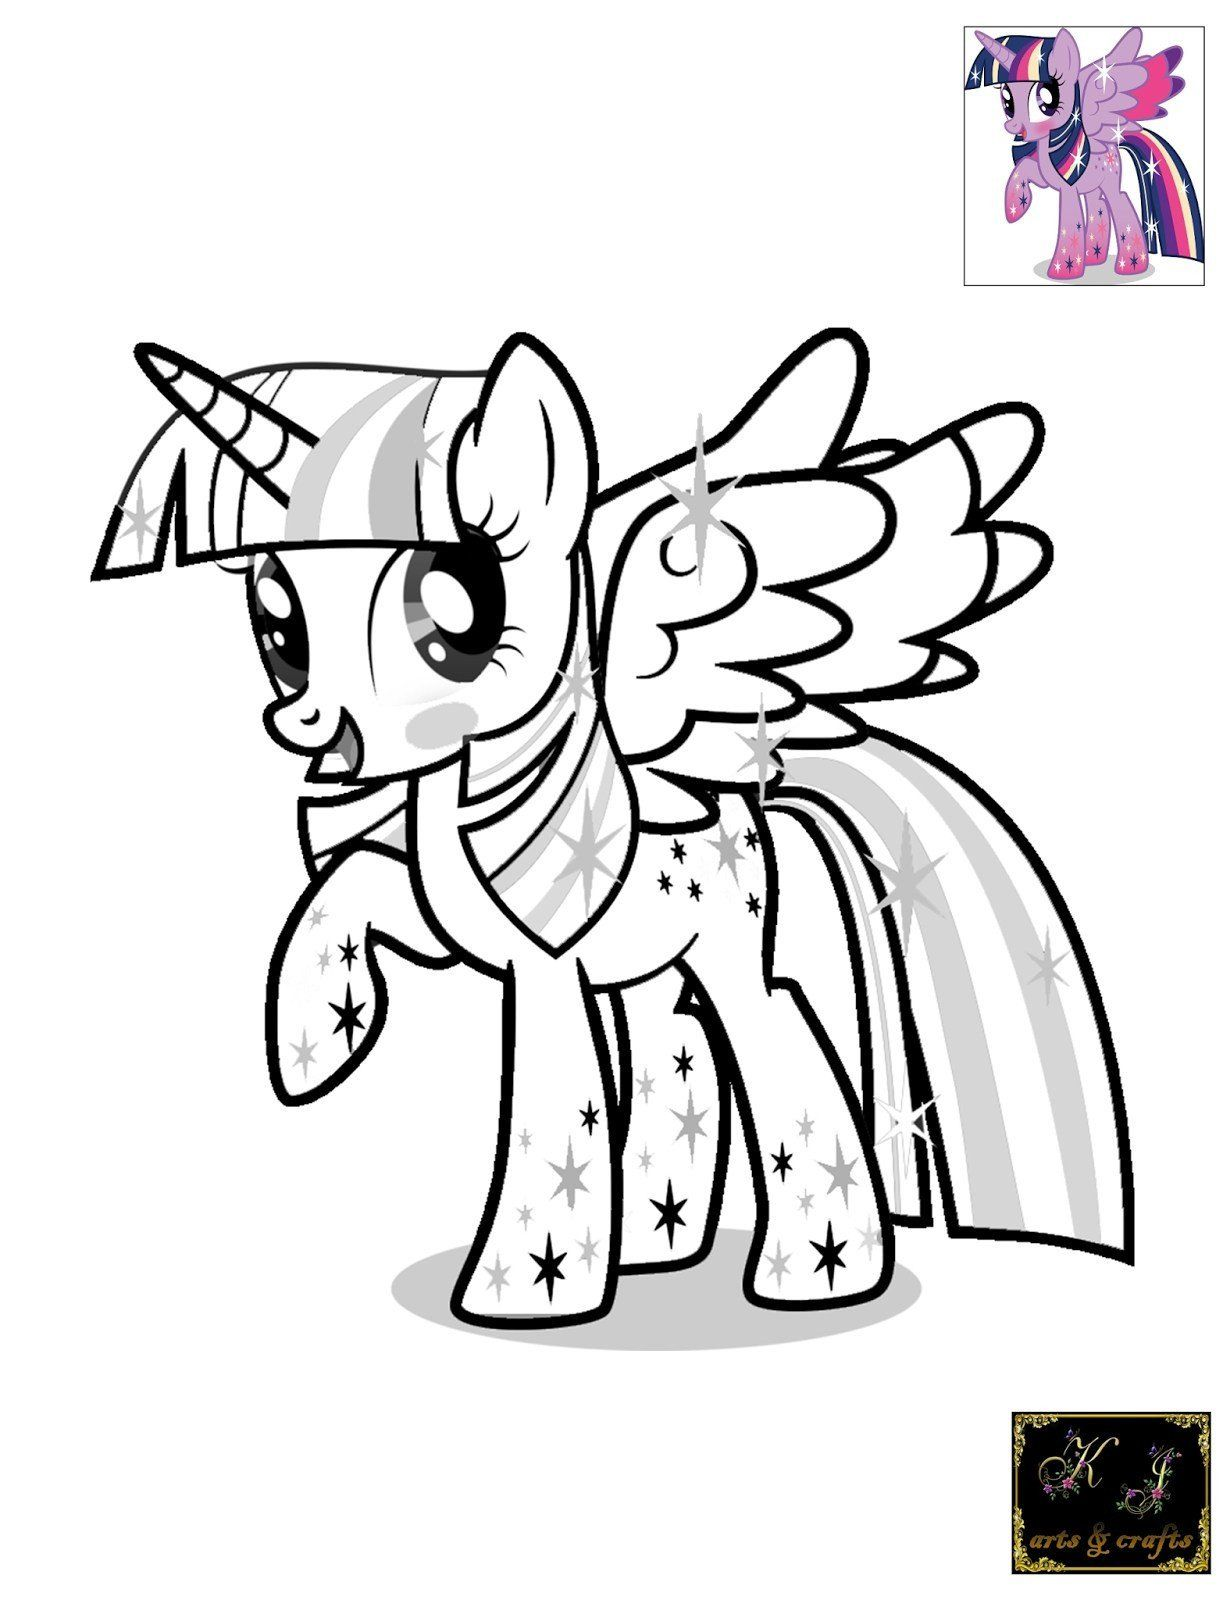 34+ Princess twilight sparkle coloring page ideas in 2021